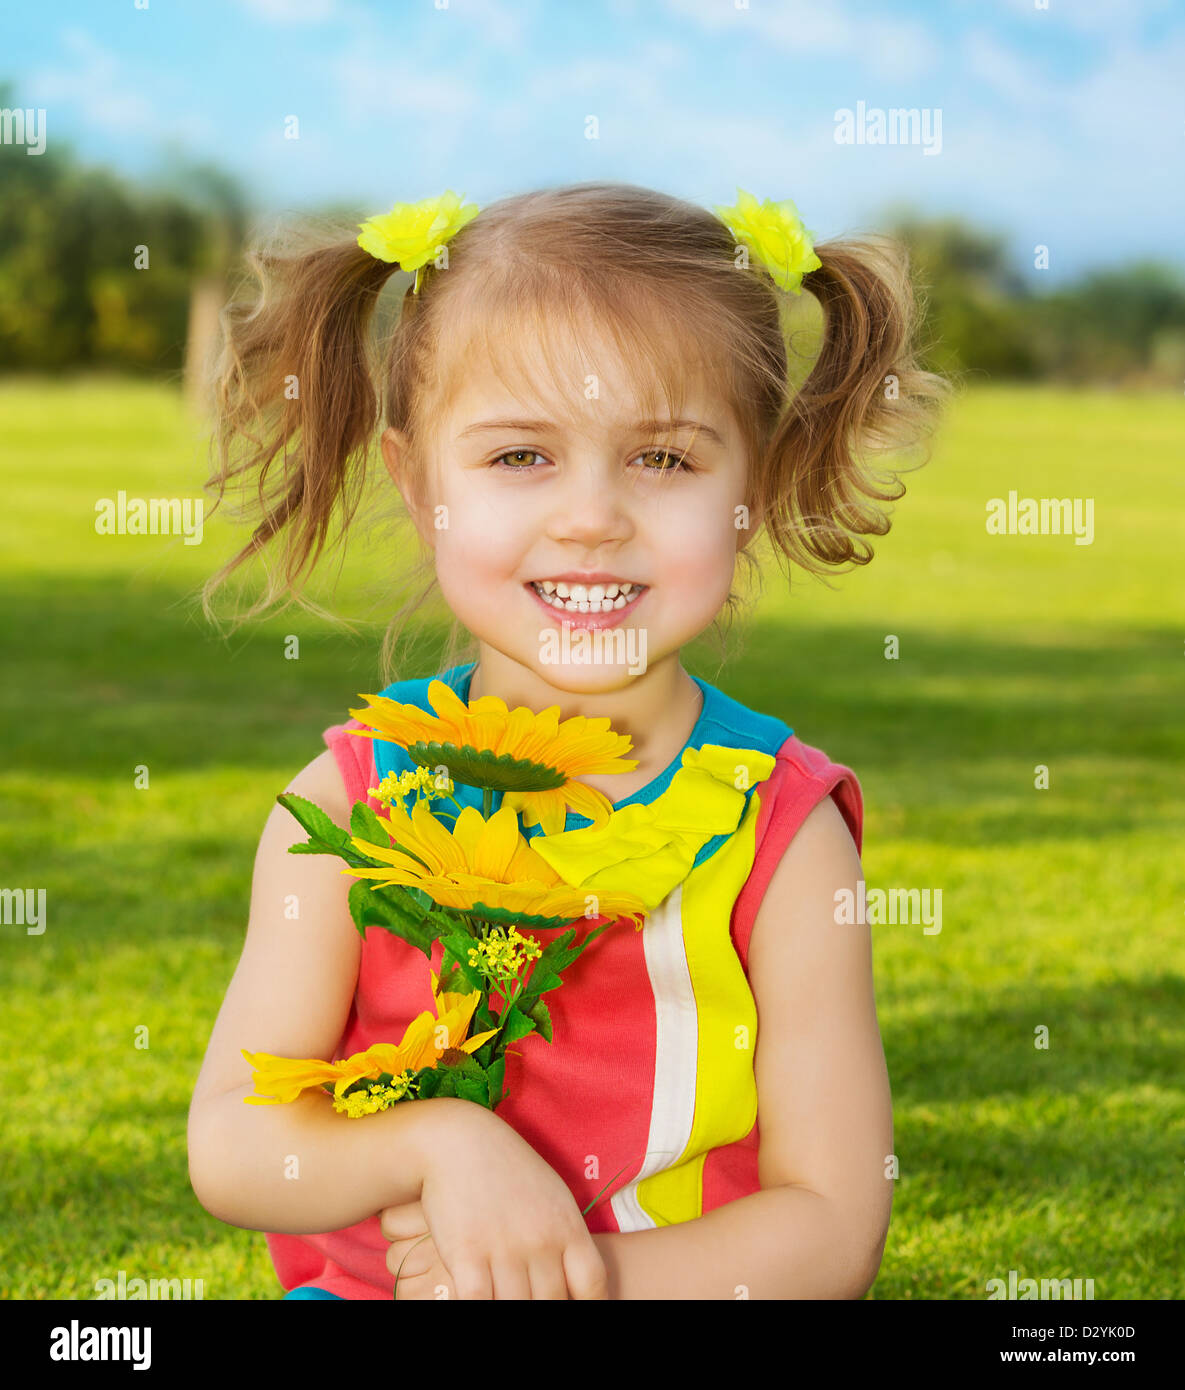 Cute small babies with yellow color dress